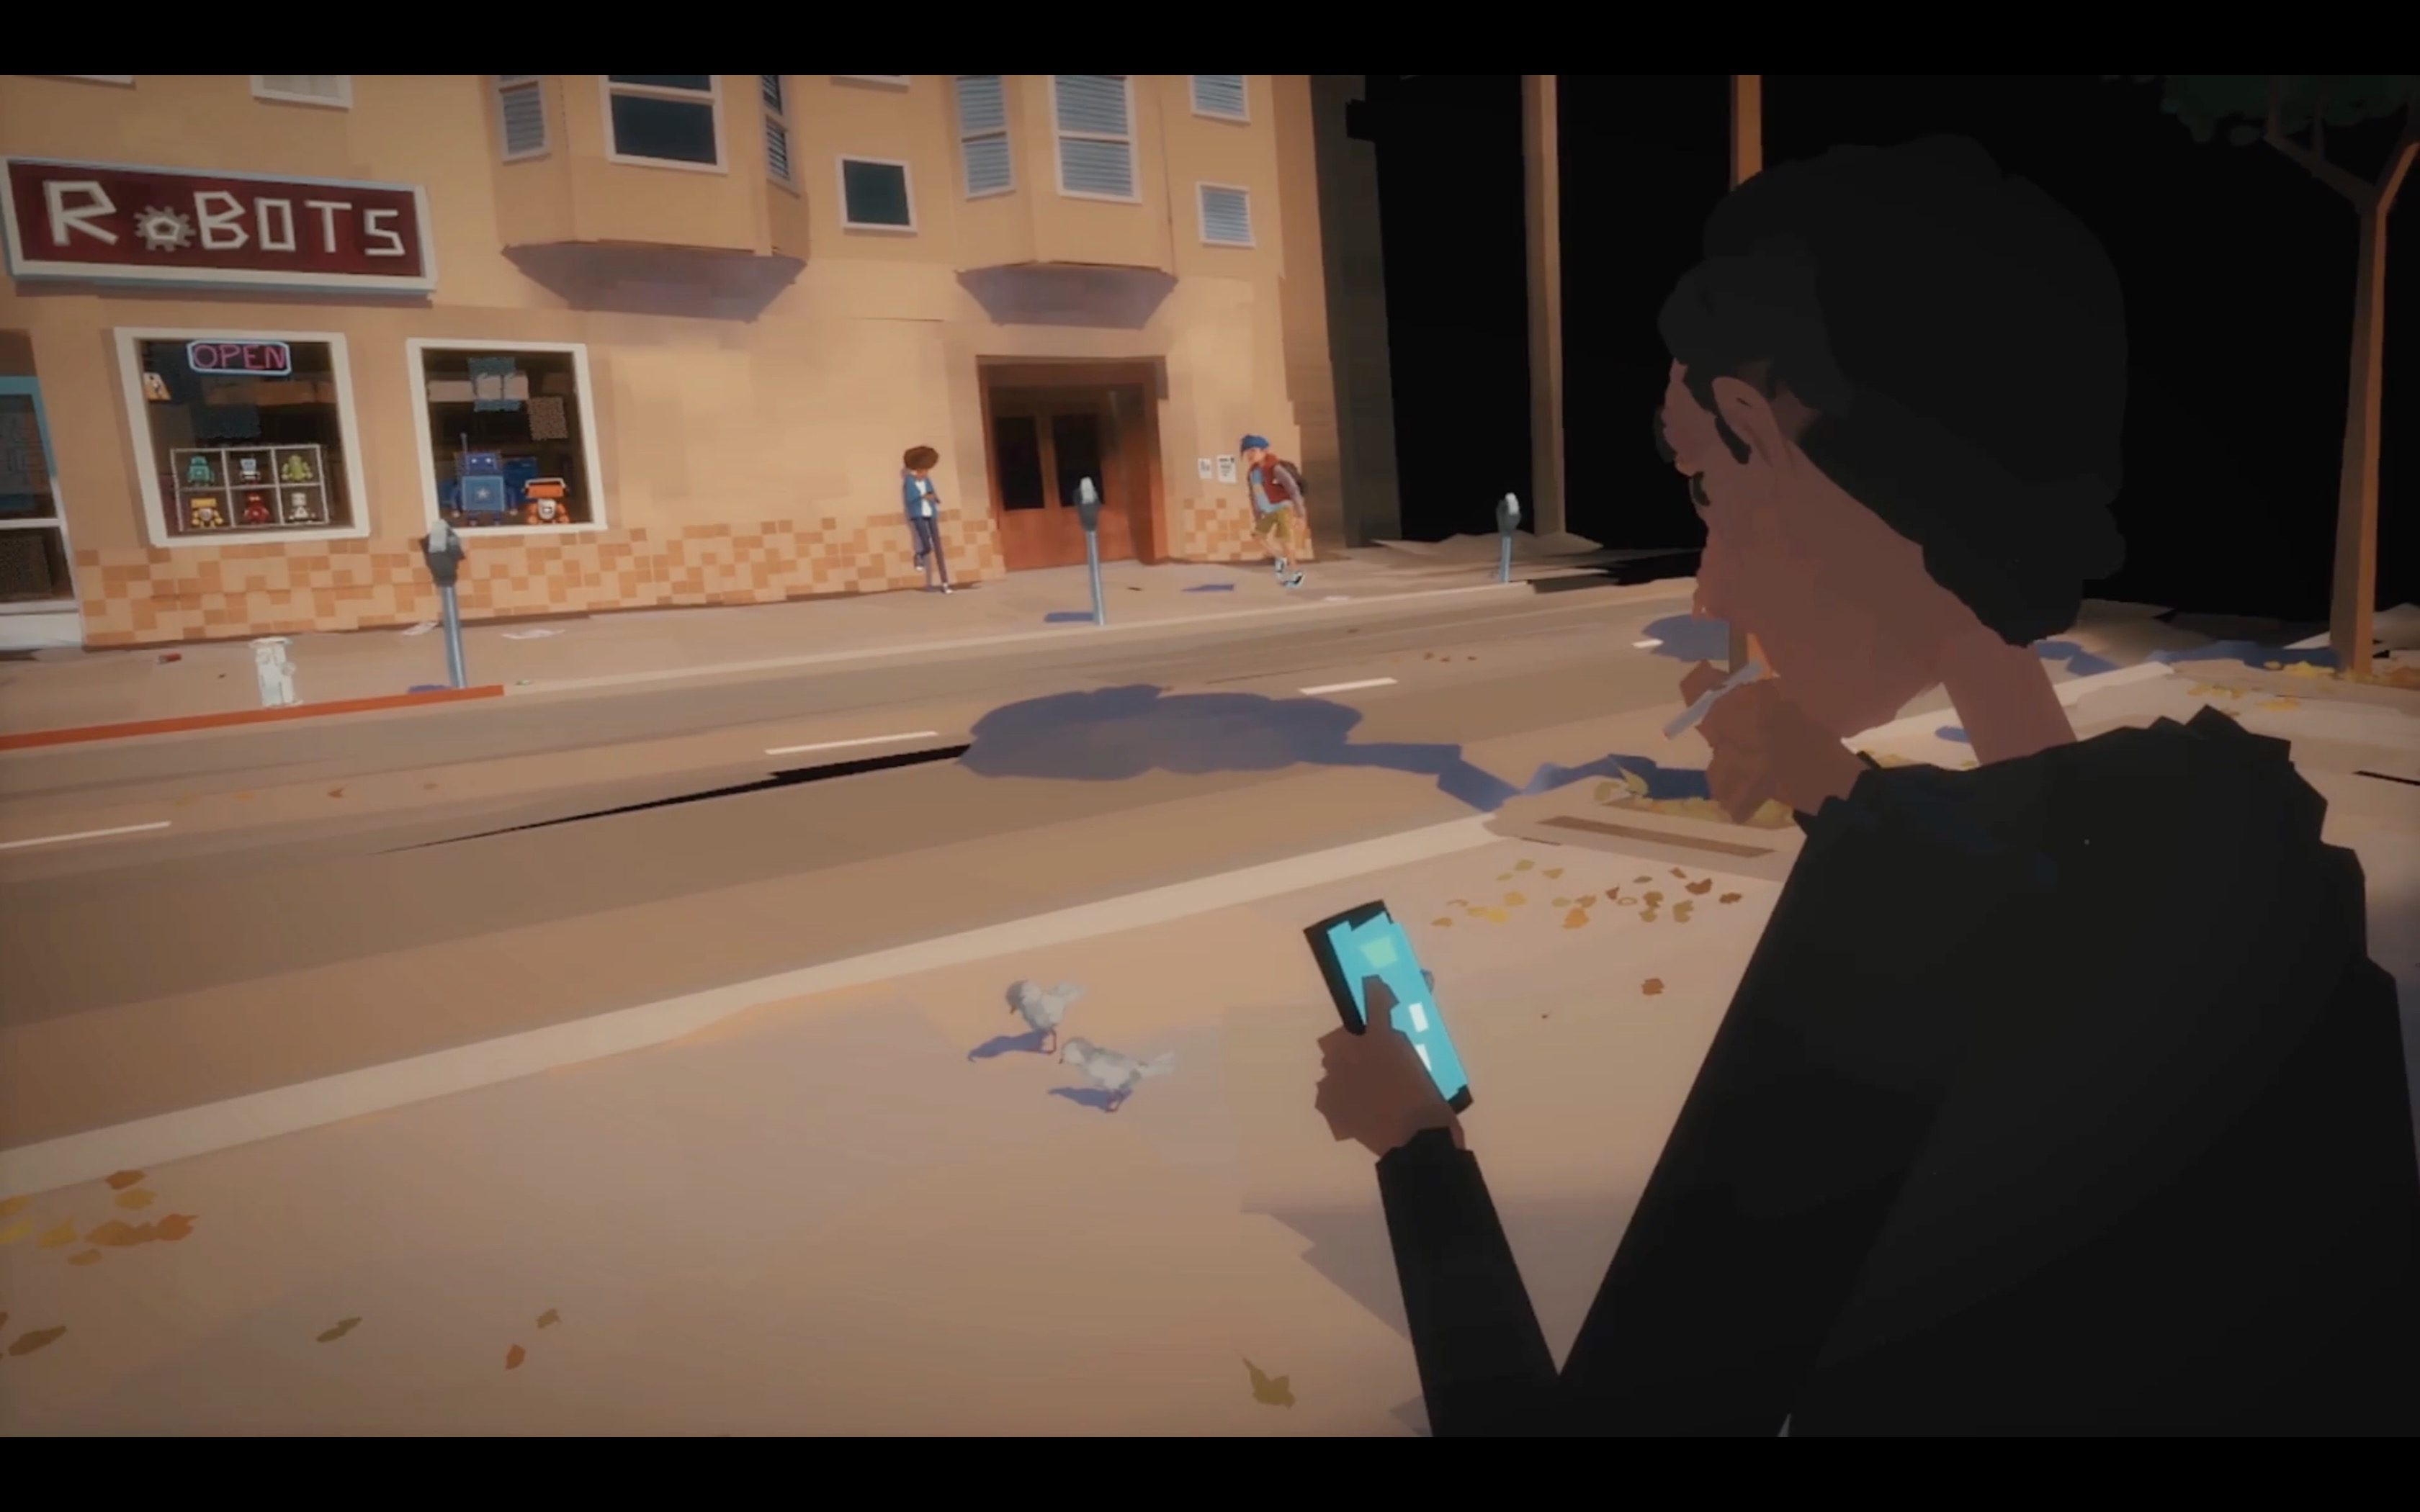 VR Animated Painting: A Moment in Time by Goro Fujita